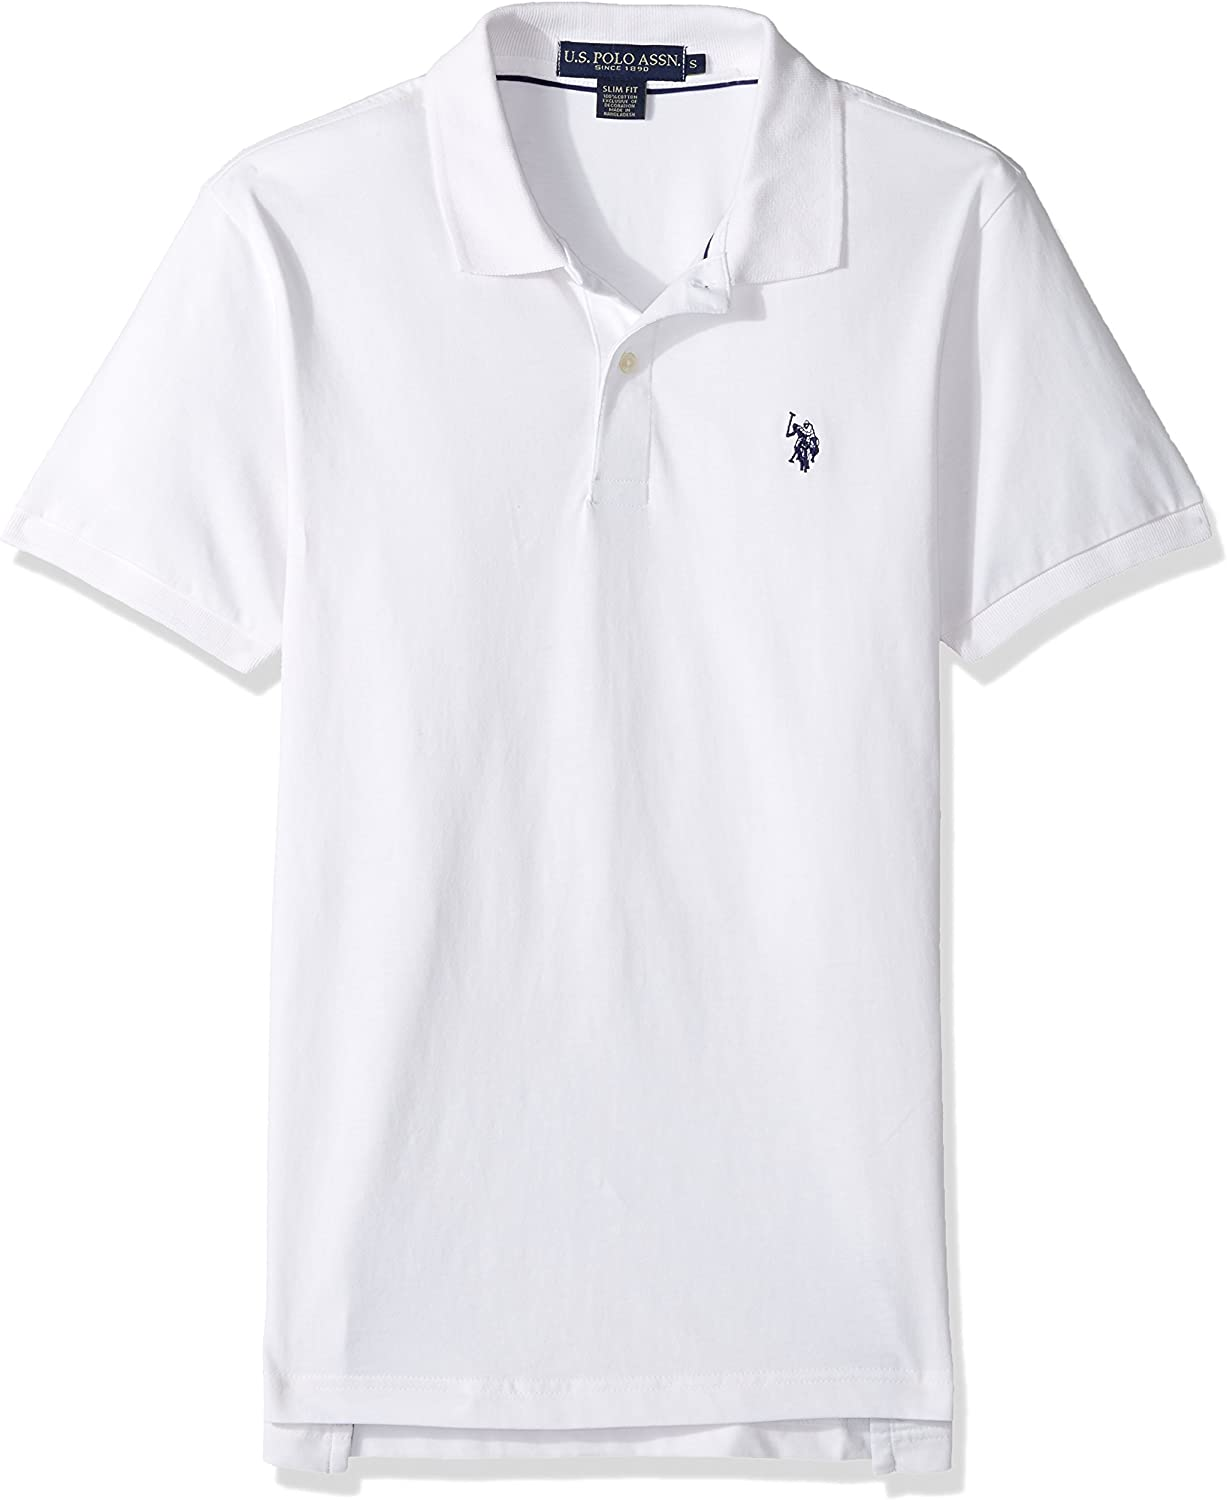 Mens Heavy Sueded Jersey Enzyme Garment Washed Polo Shirt U.S Polo Assn